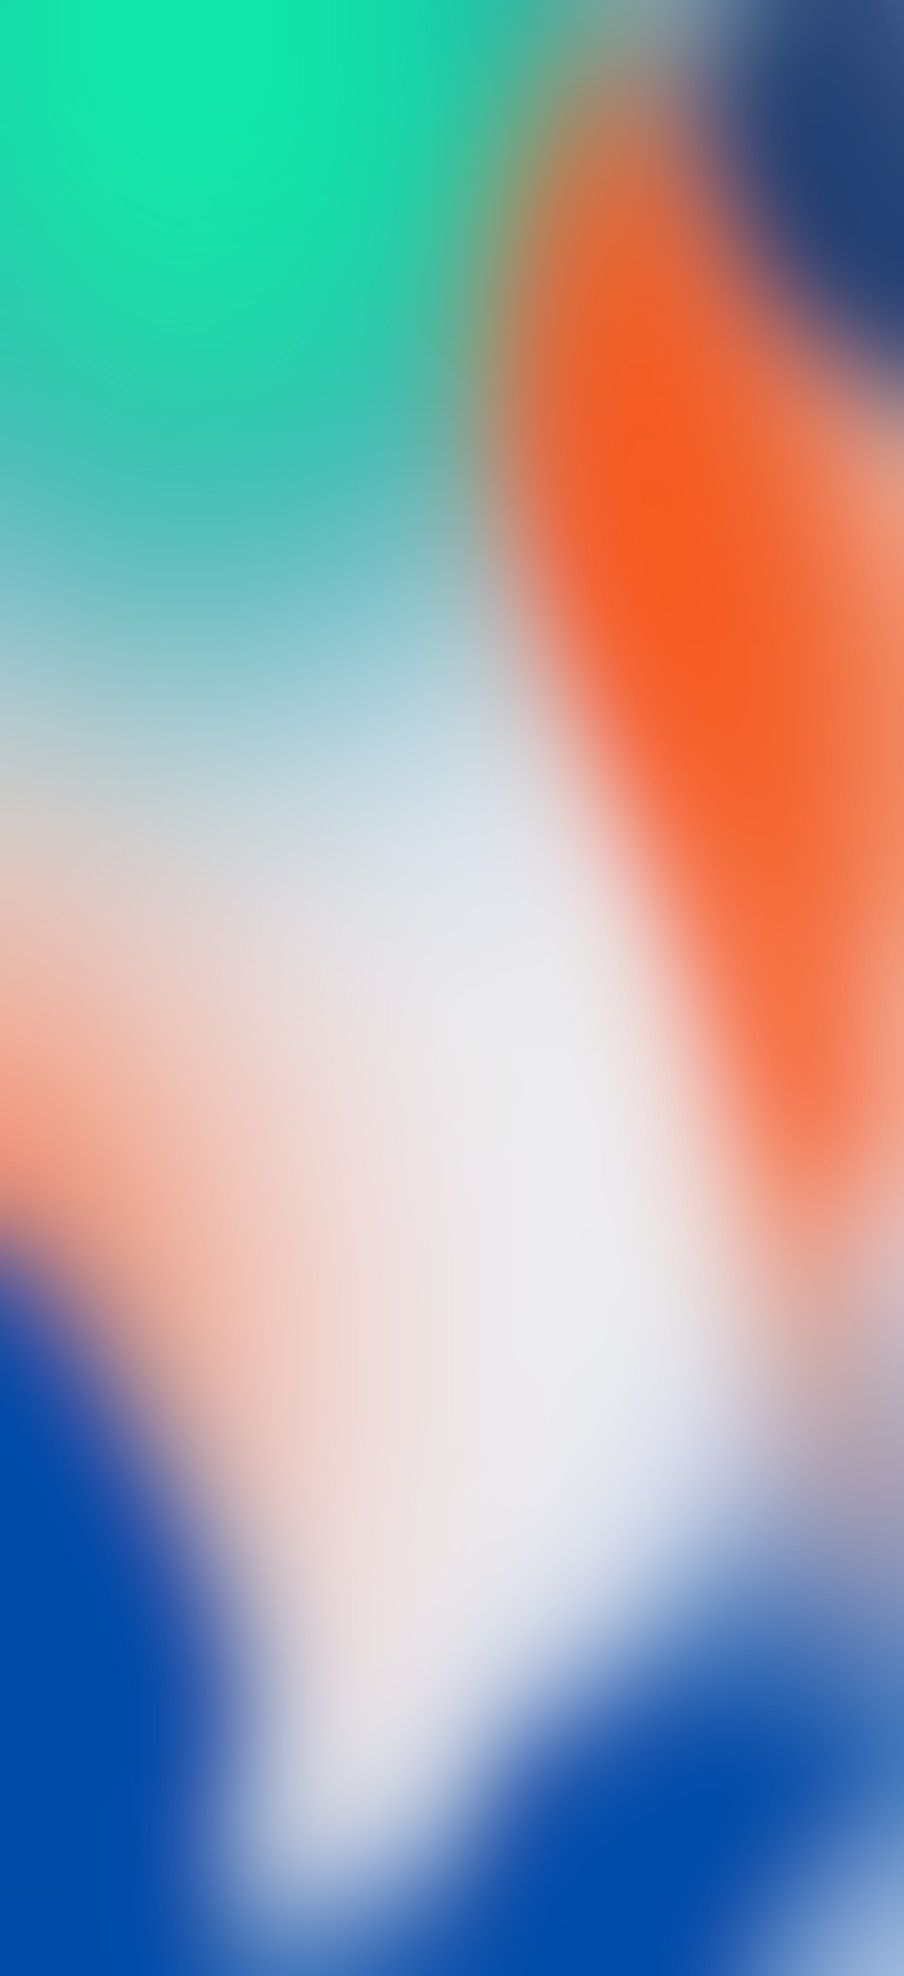 Ios 11 Iphone X Orange Green Blue Stock Abstract Apple Wallpaper Clean Beaut Iphone Wallpaper Ios 11 Iphone Wallpaper Ios Iphone Homescreen Wallpaper